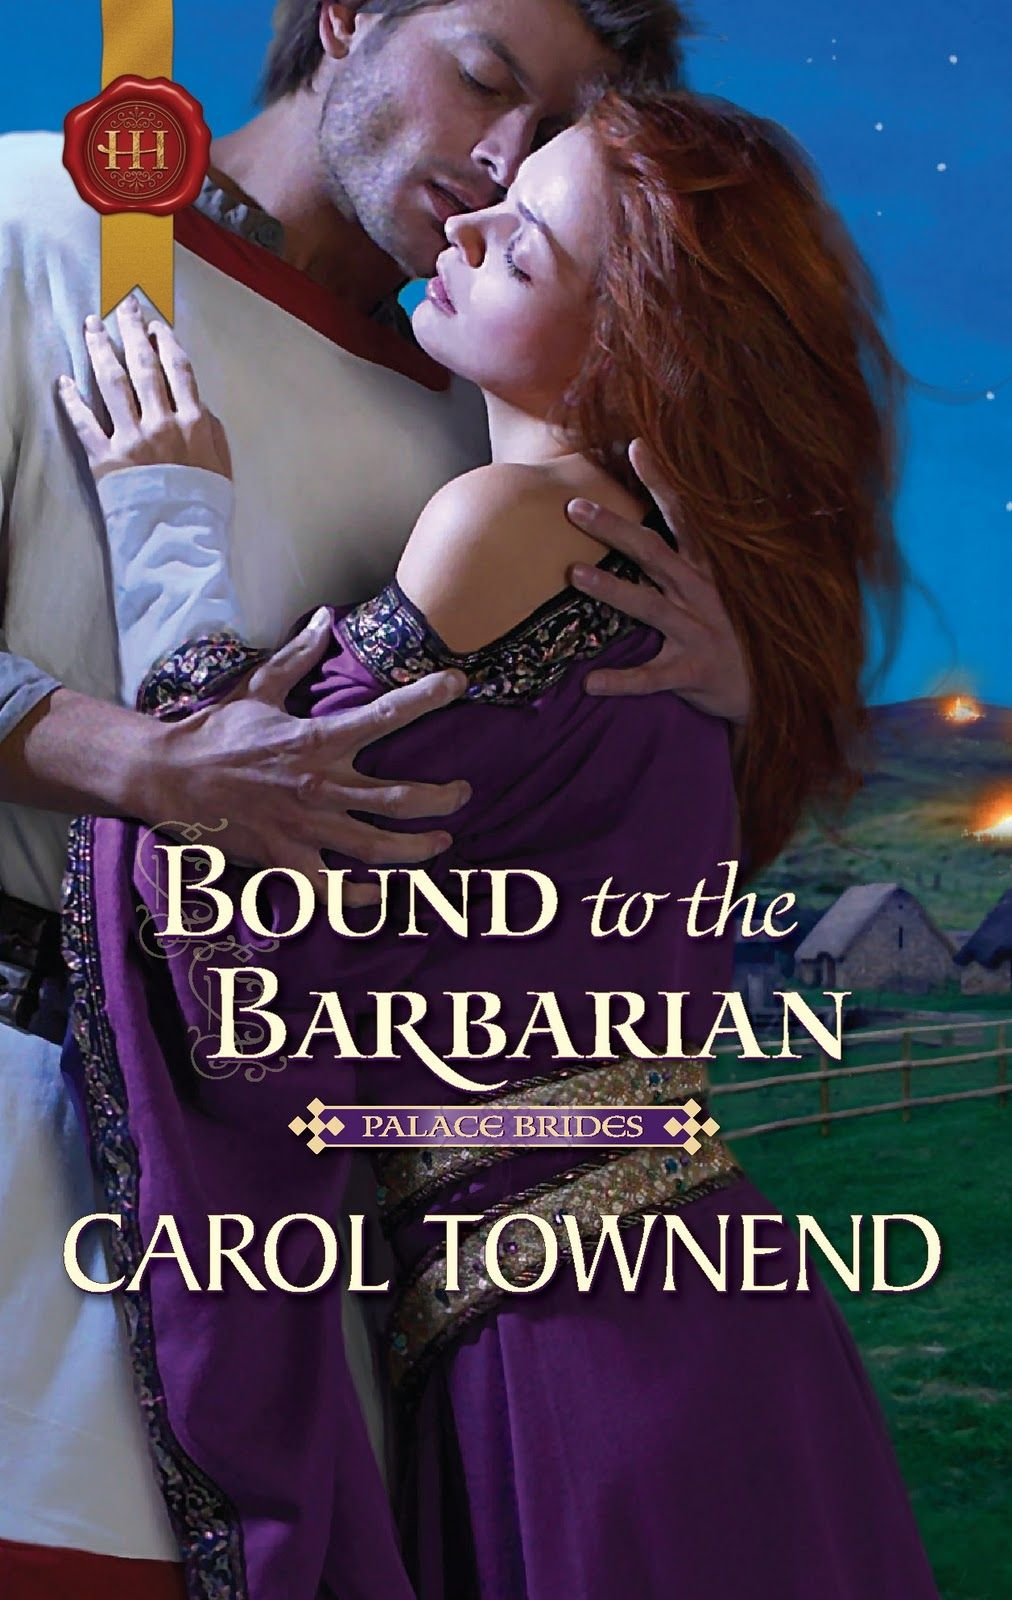 Pin by No No on Harlequin Romance Novels (With images